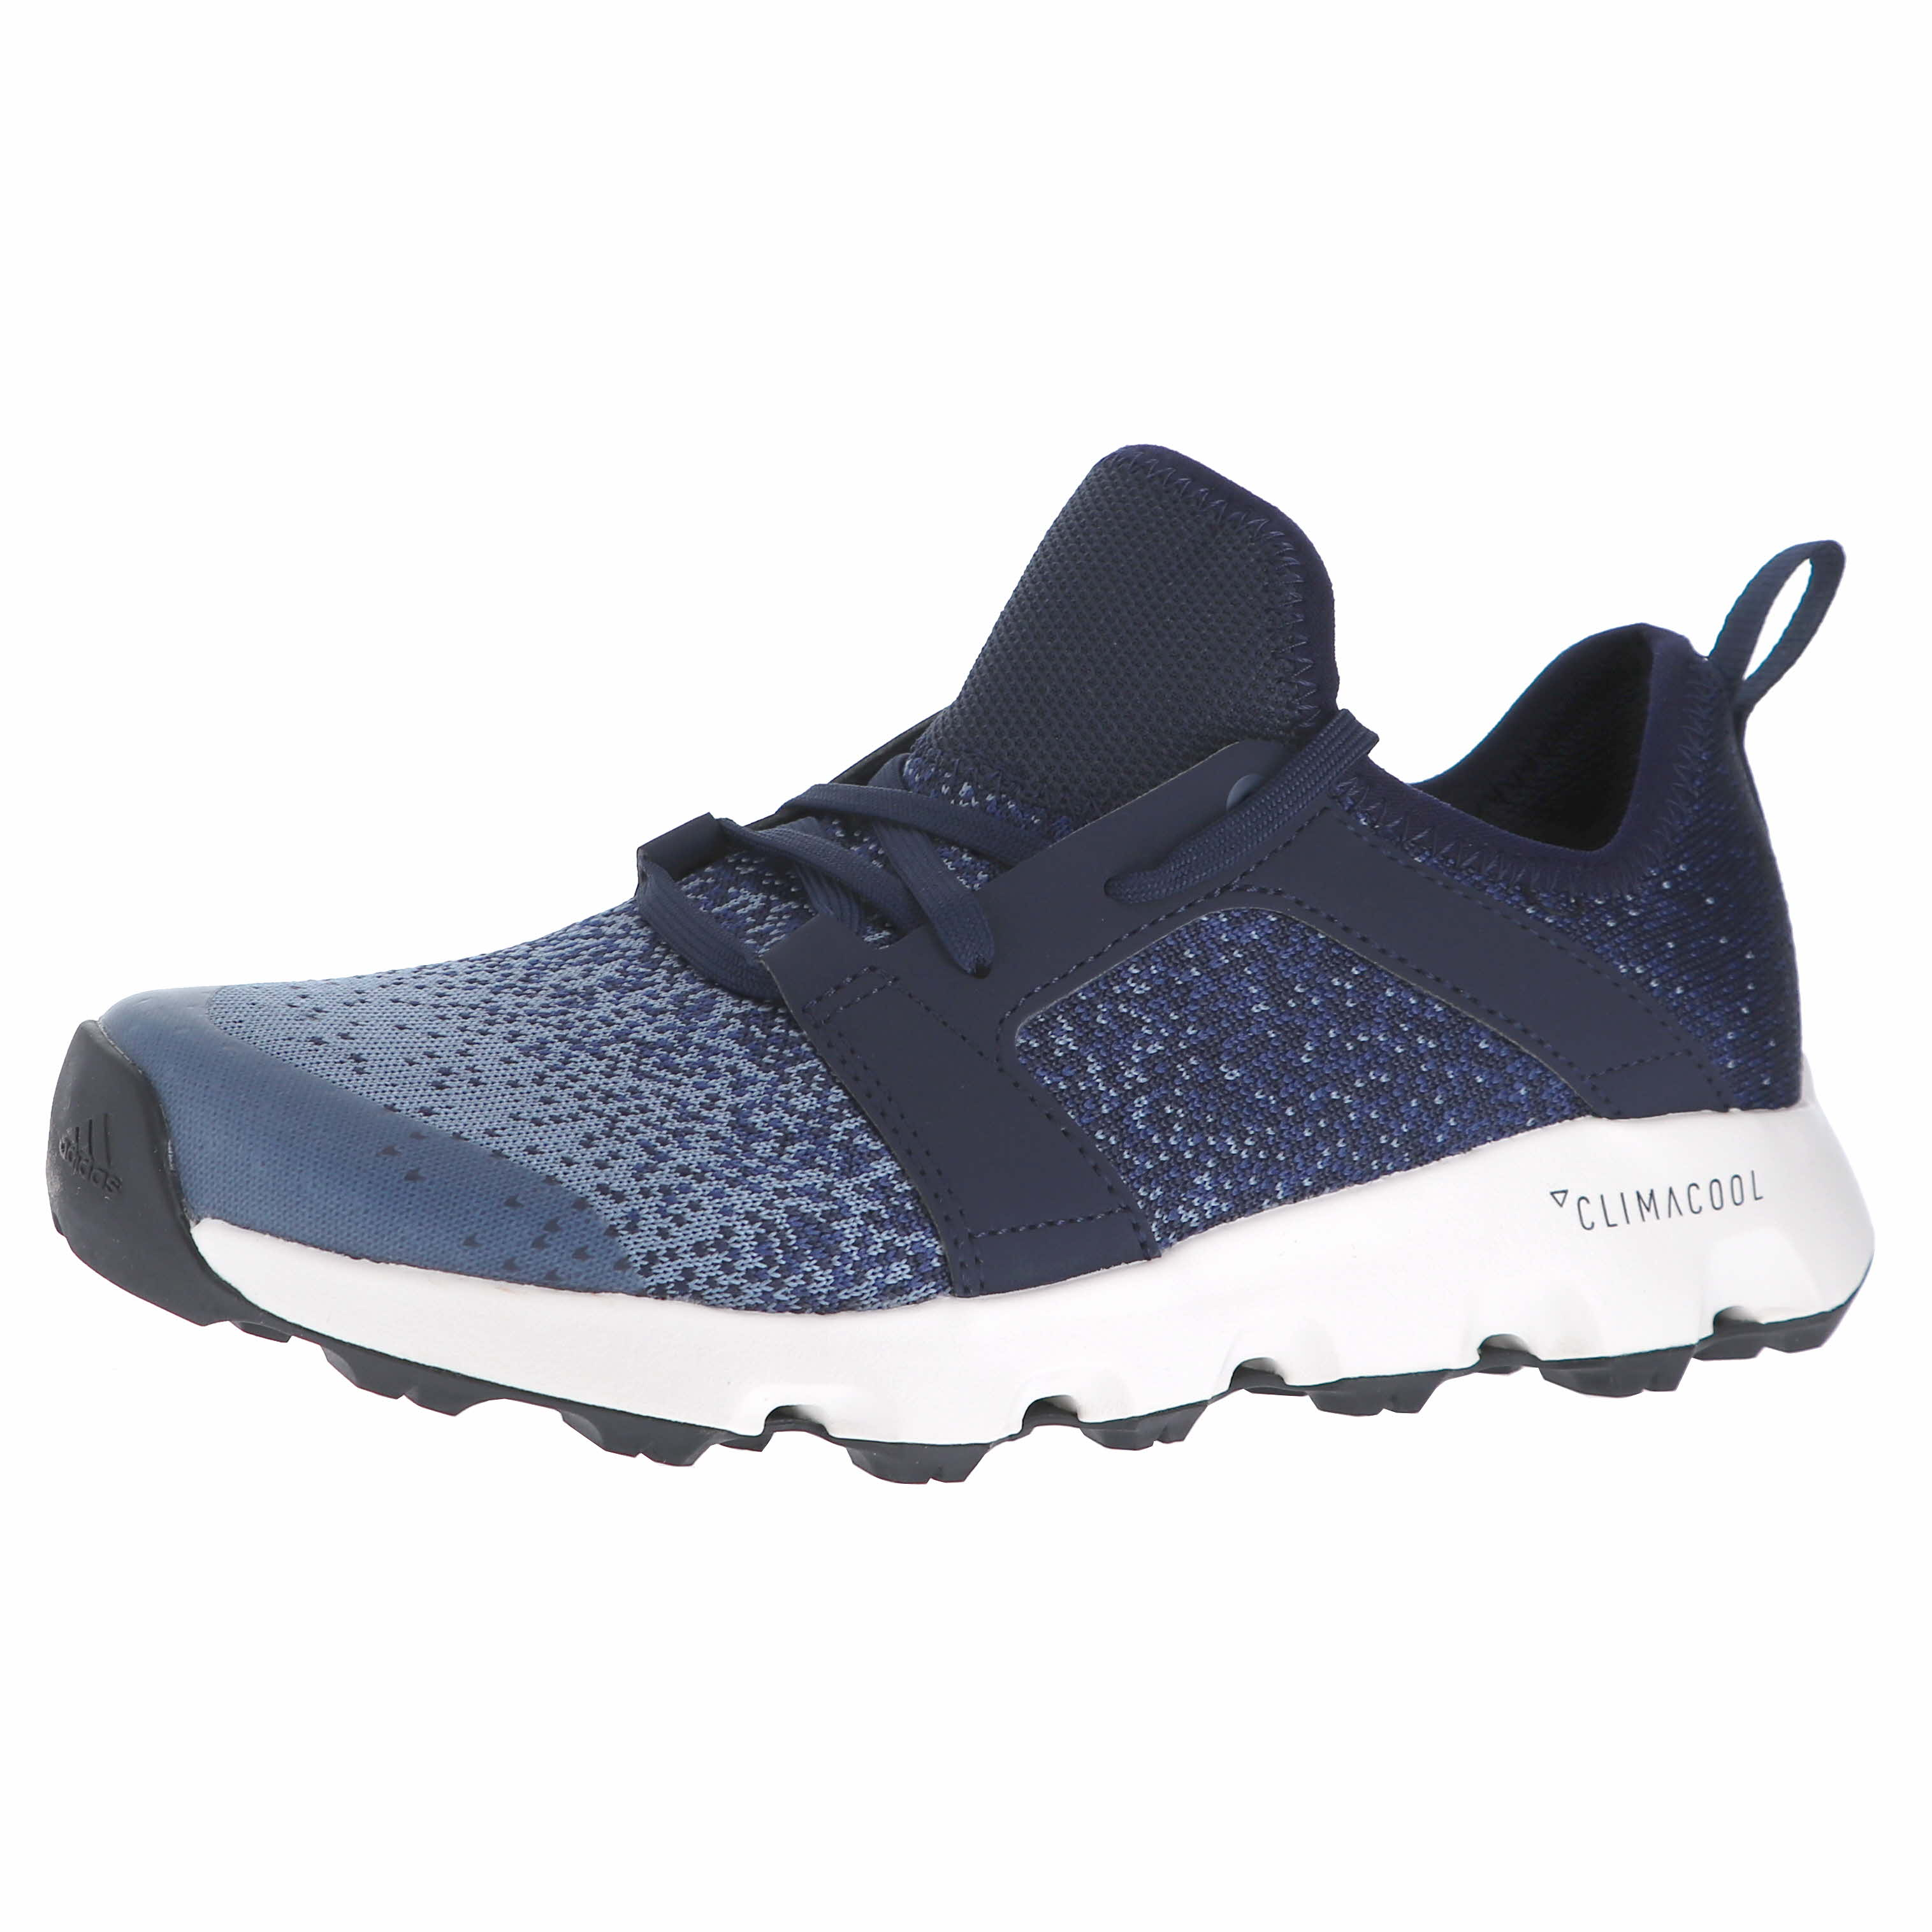 separation shoes 053a0 67312 Details about Adidas Terrex Cc Voyager Sleek Parley Tactile Blue/Raw  Grey/Chalk Wh Womens 7M